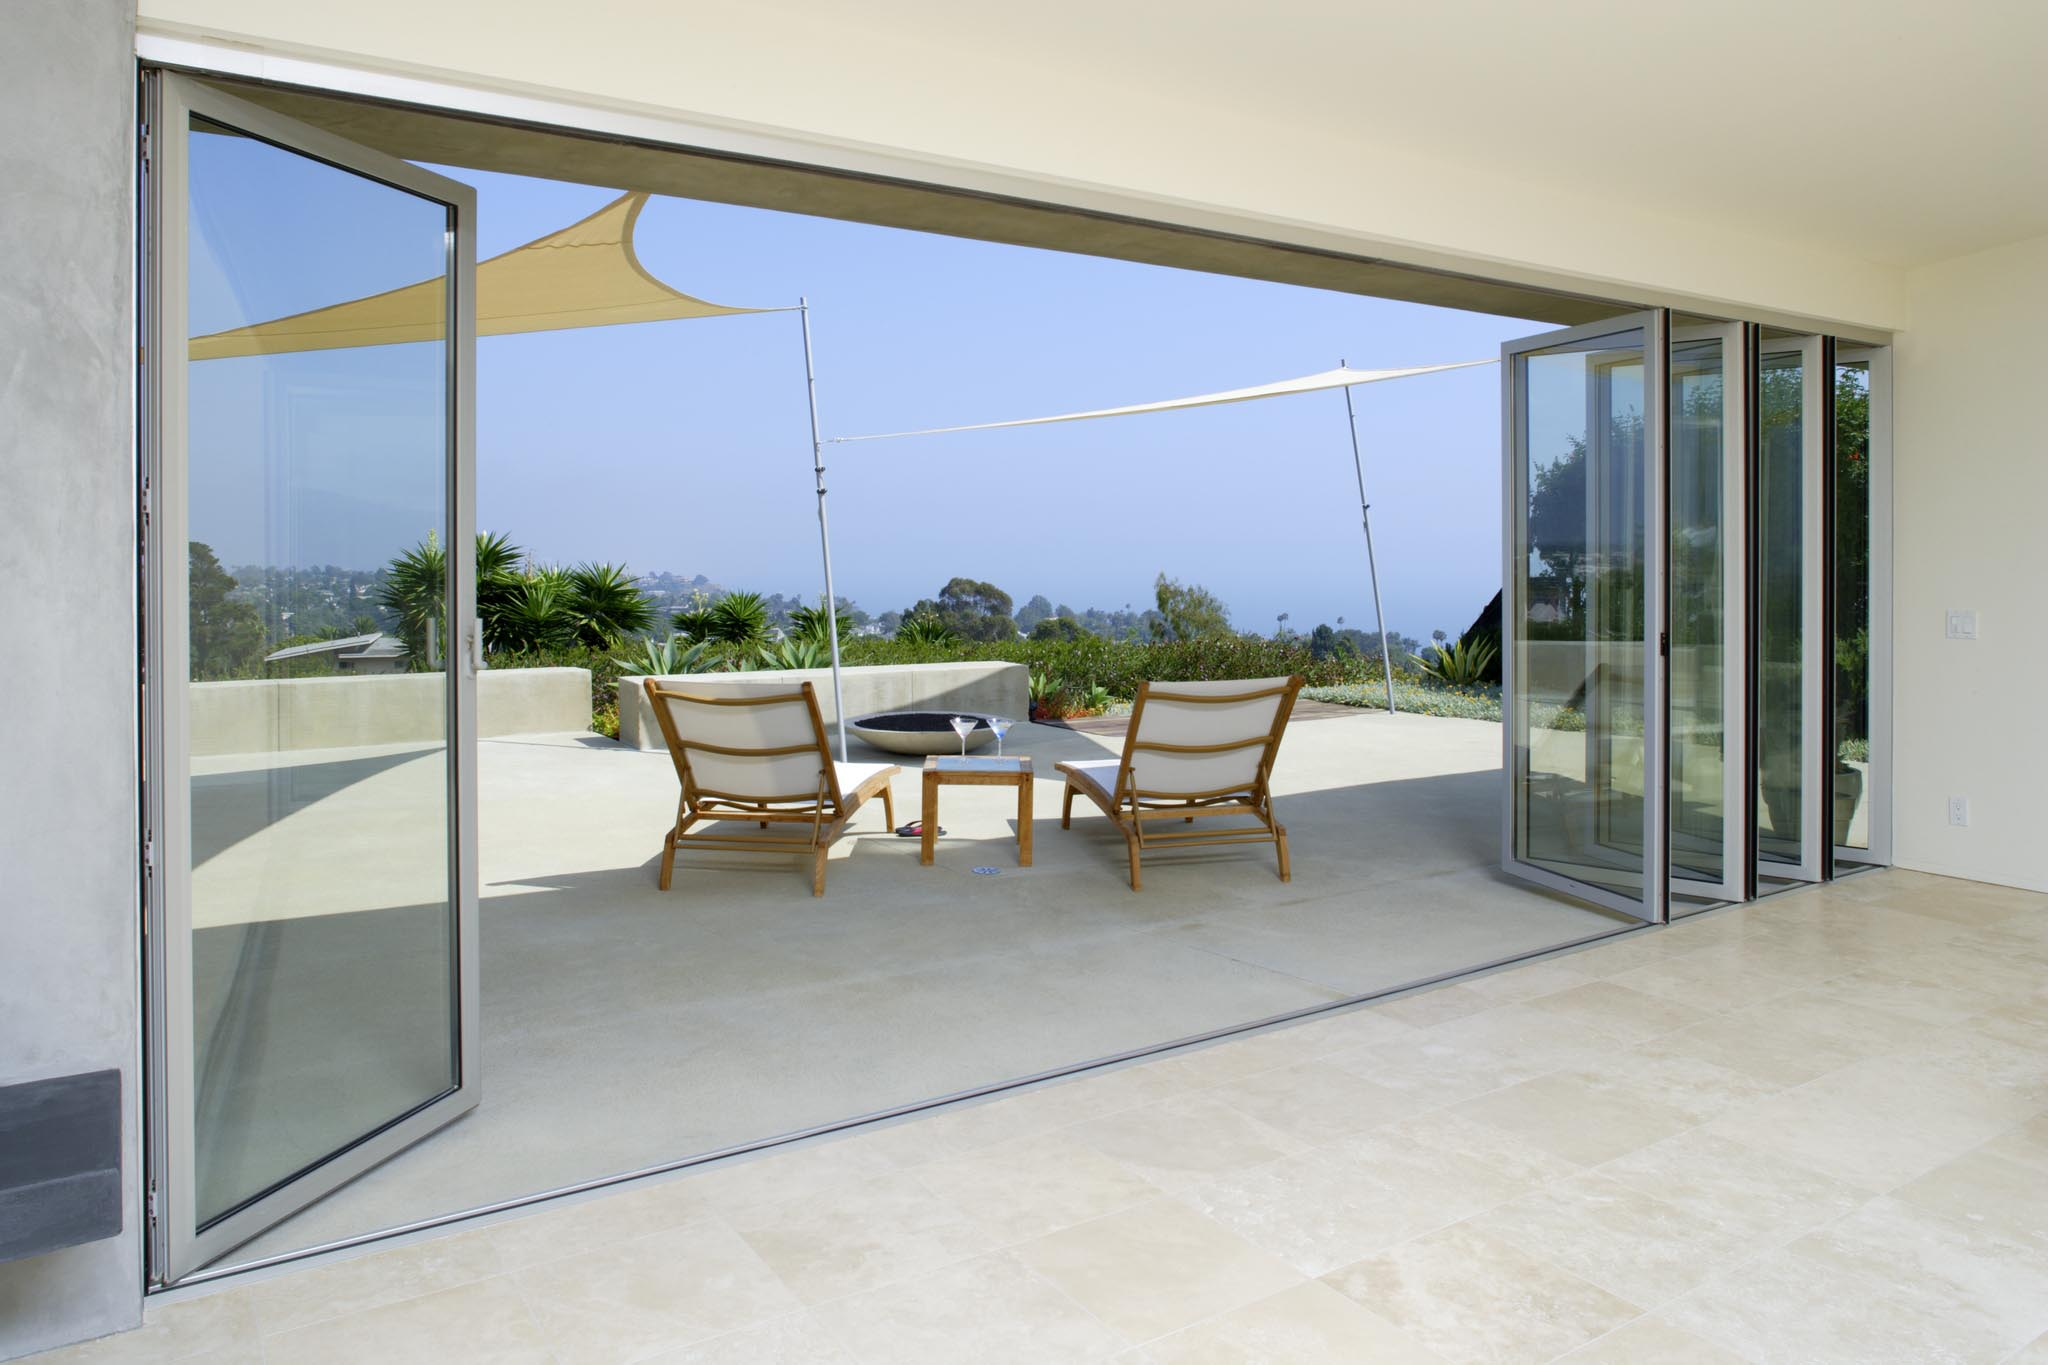 Pacific palisades residence gallery nanawall operable - Folding partitions residential ...